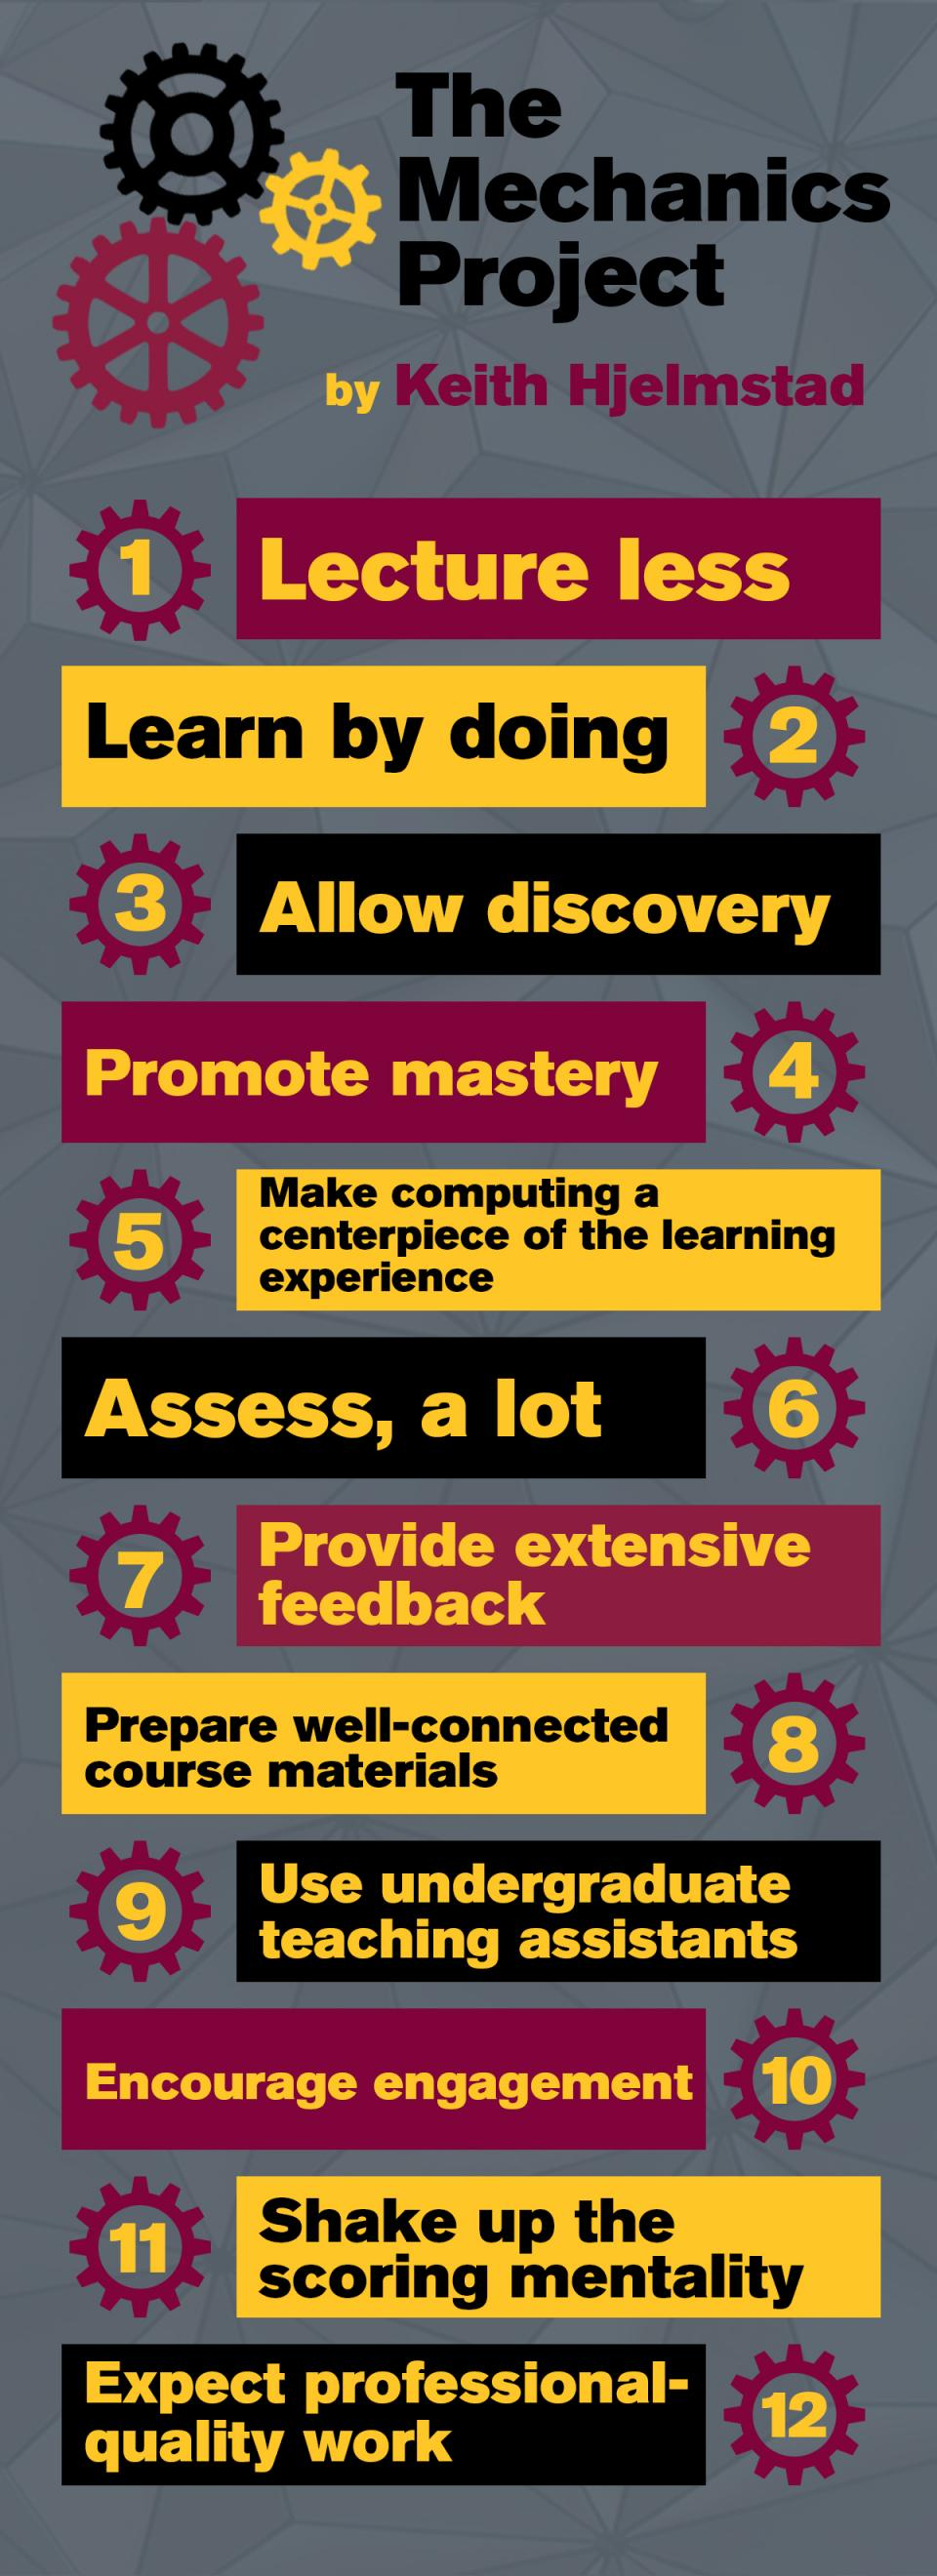 Graphic showing engineering education goals and steps